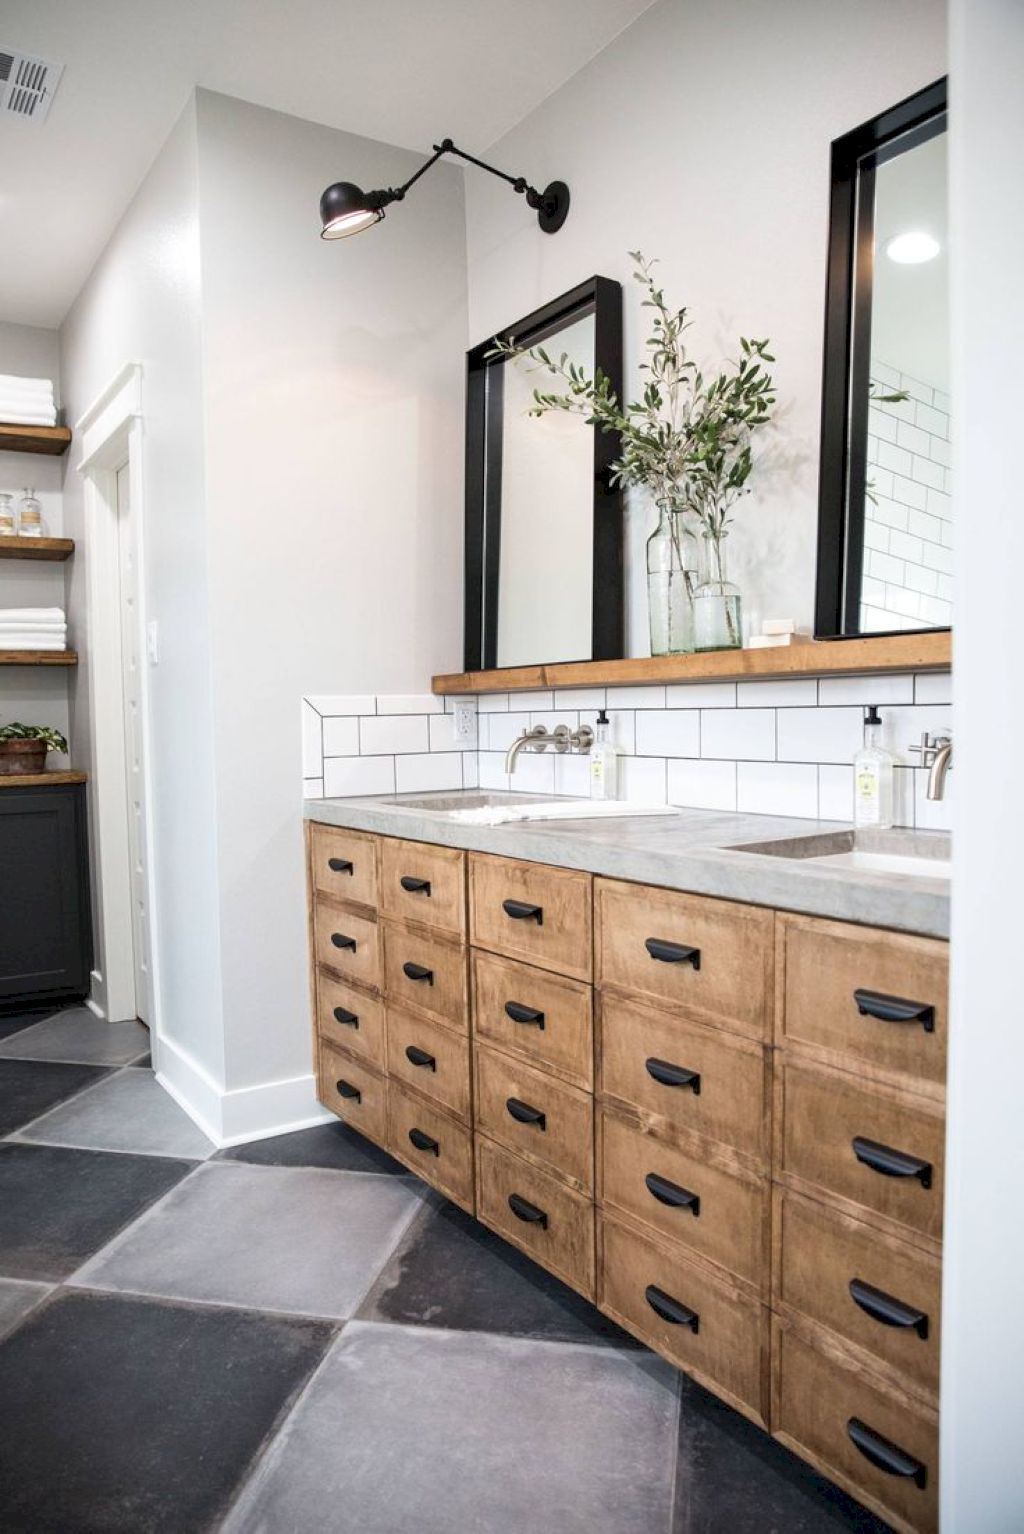 Feel With Black Accessories And Natural Wood Bathroom Vanity